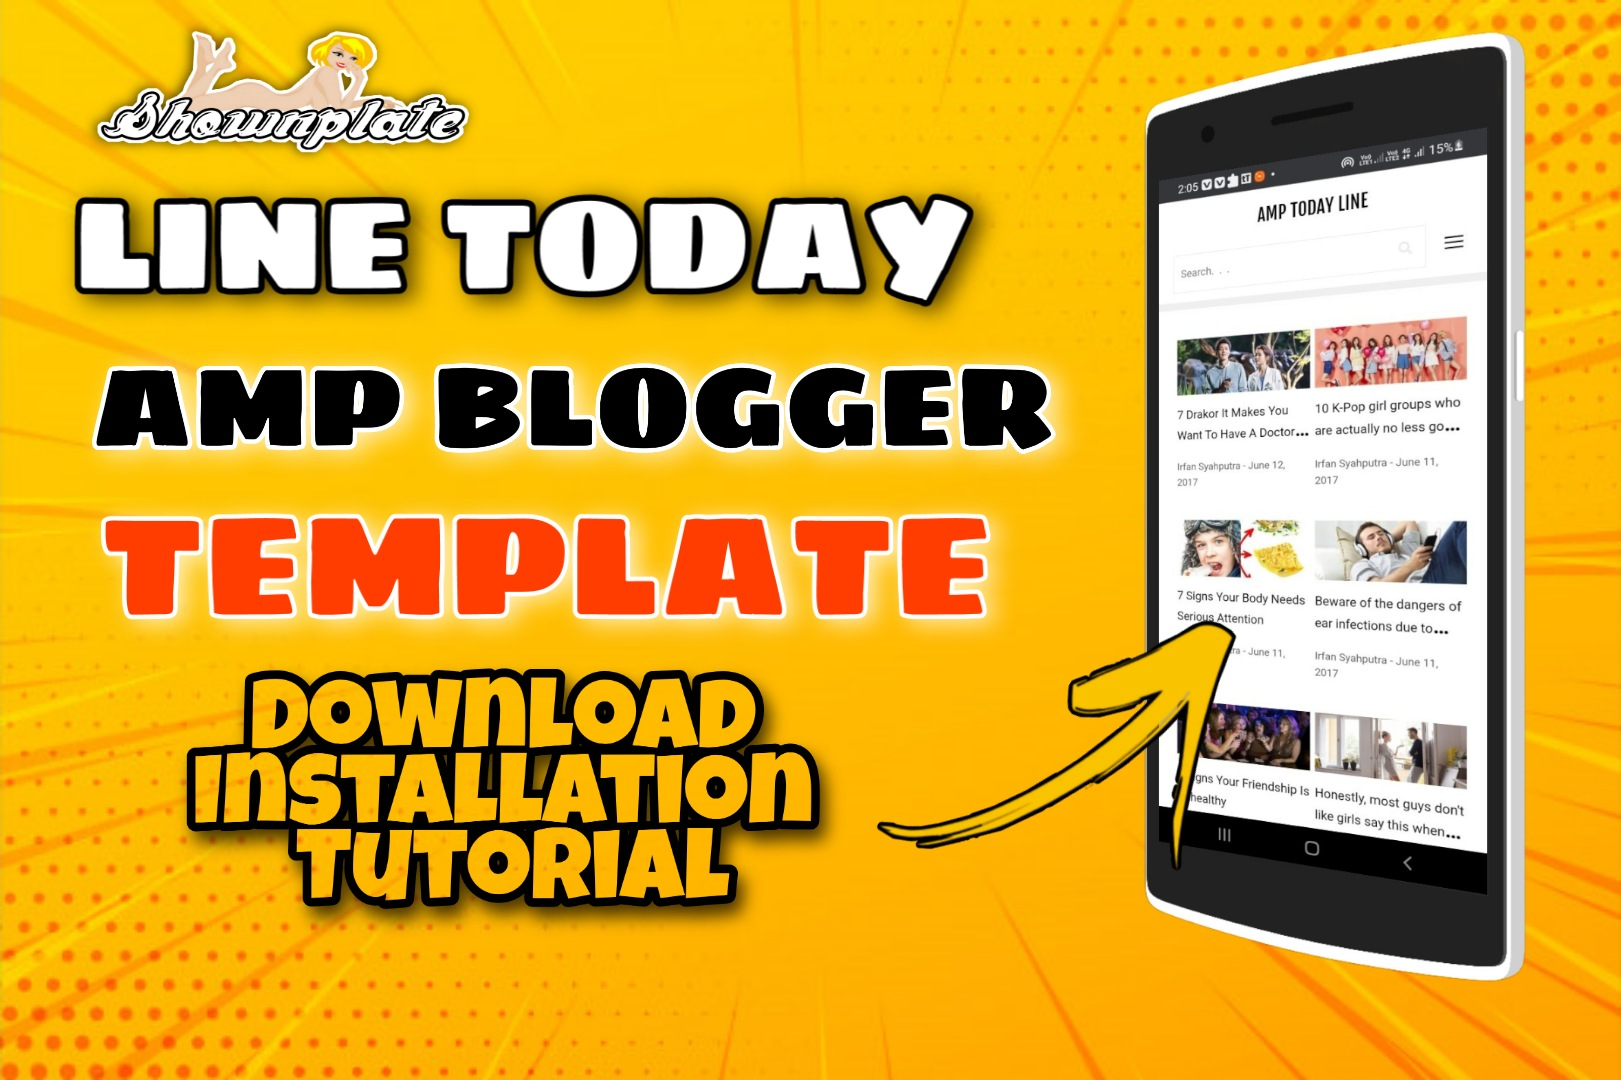 Line Today Best AMP Blogger Template 2021